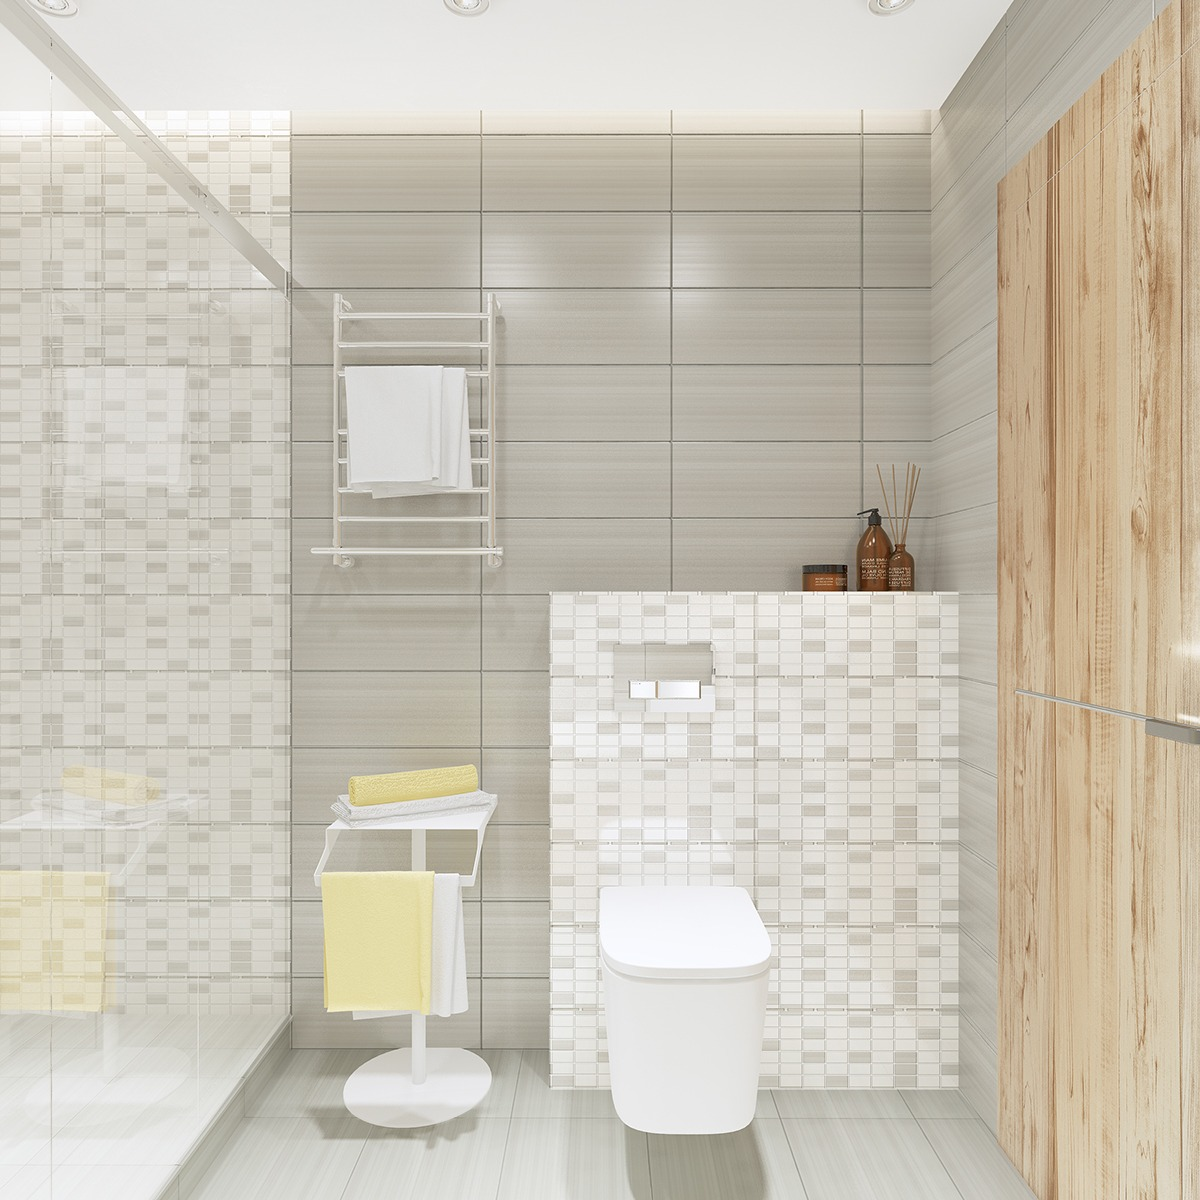 Simple Sleek Bathroom - Similarly simple designs with a bright and cheerful tone